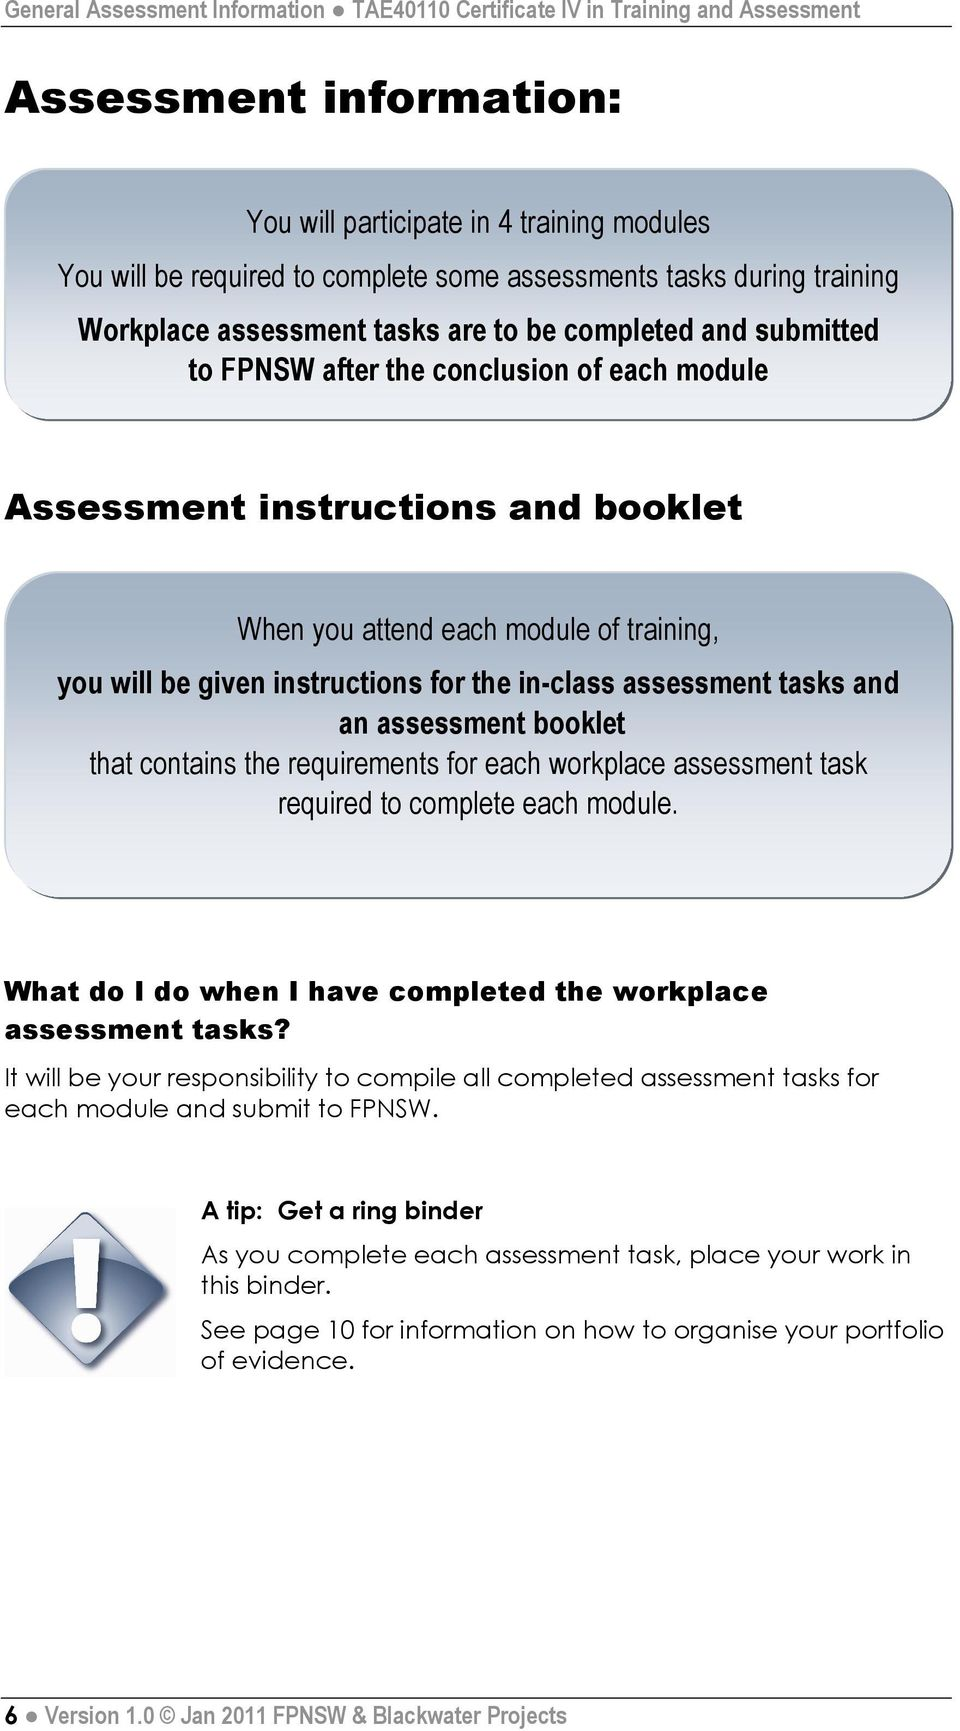 training, you will be given instructions for the in-class assessment tasks and an assessment booklet that contains the requirements for each workplace assessment task required to complete each module.